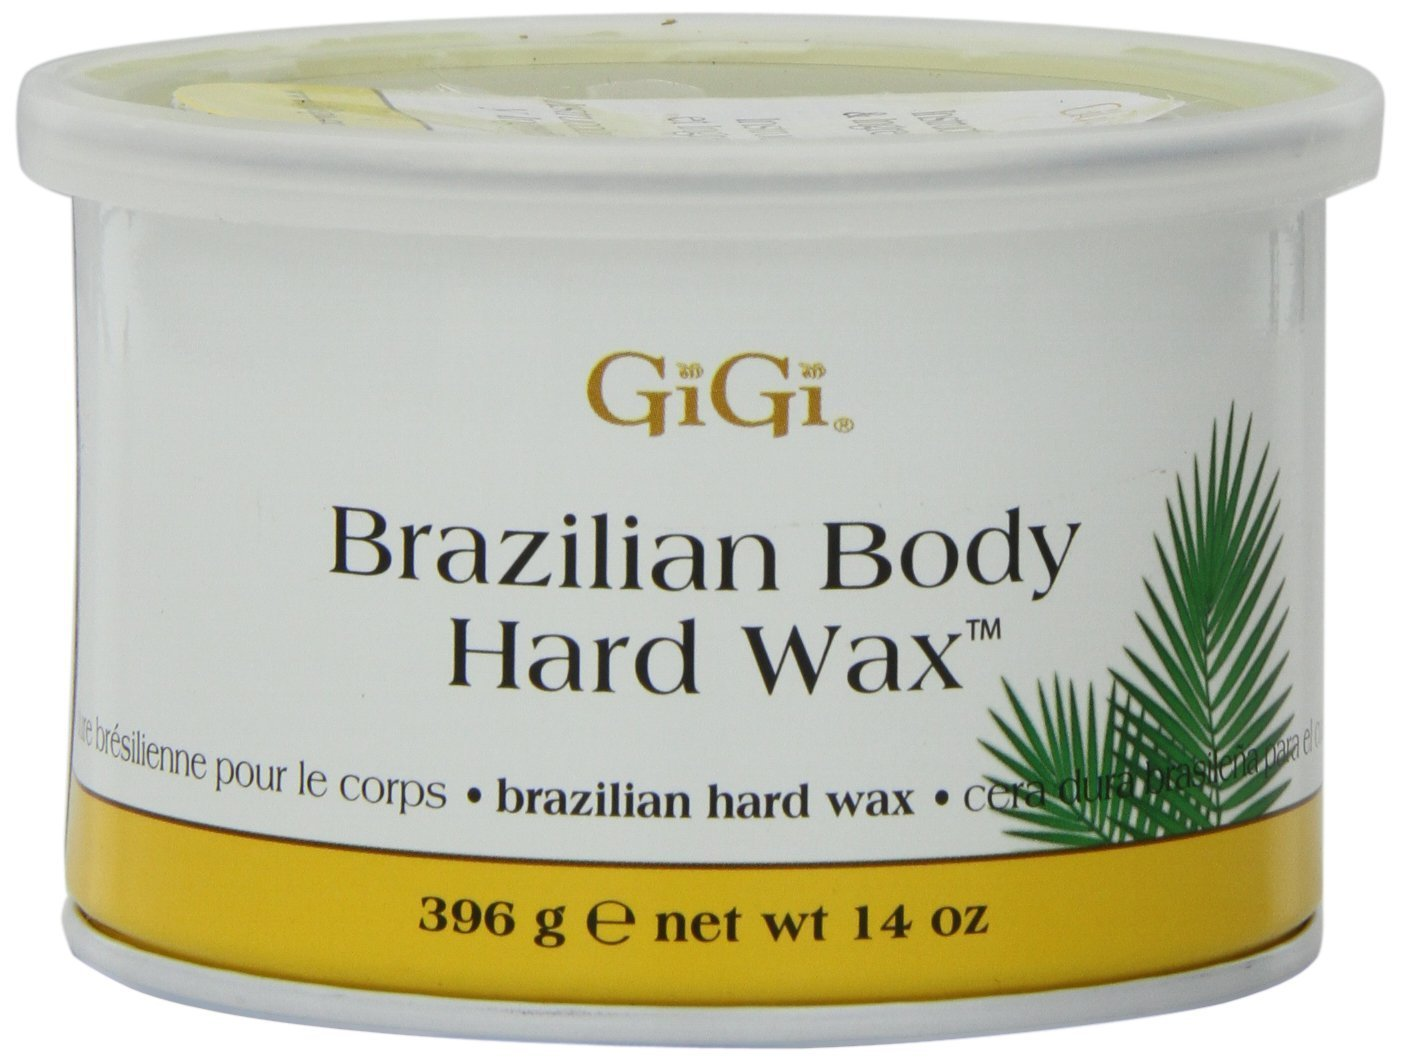 Gigi Tin Brazilian Body Hard Wax 14 Ounce (414ml) (3 Pack)